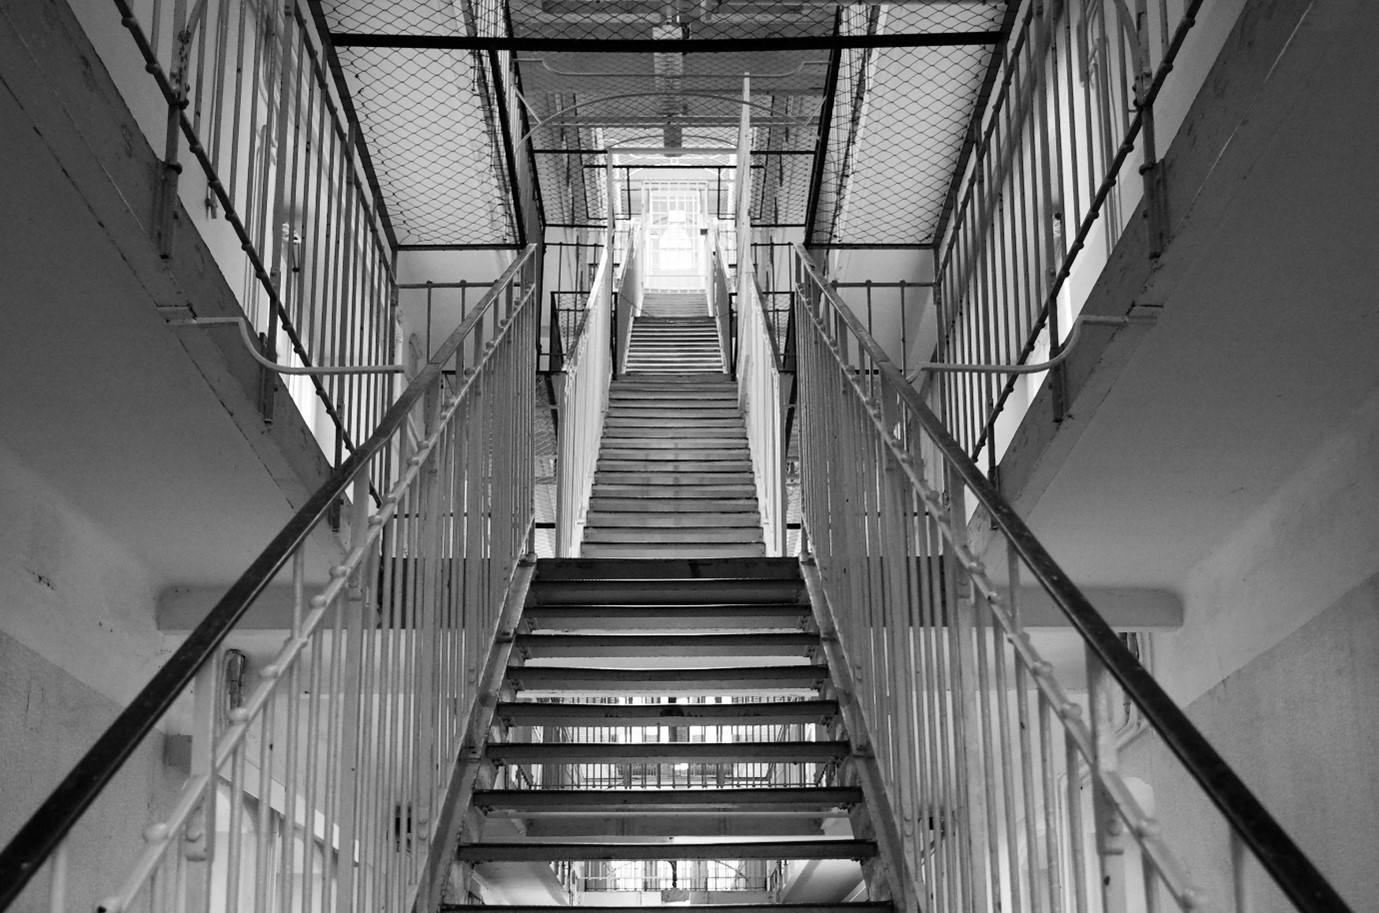 A staircase leading upwards inside a prison